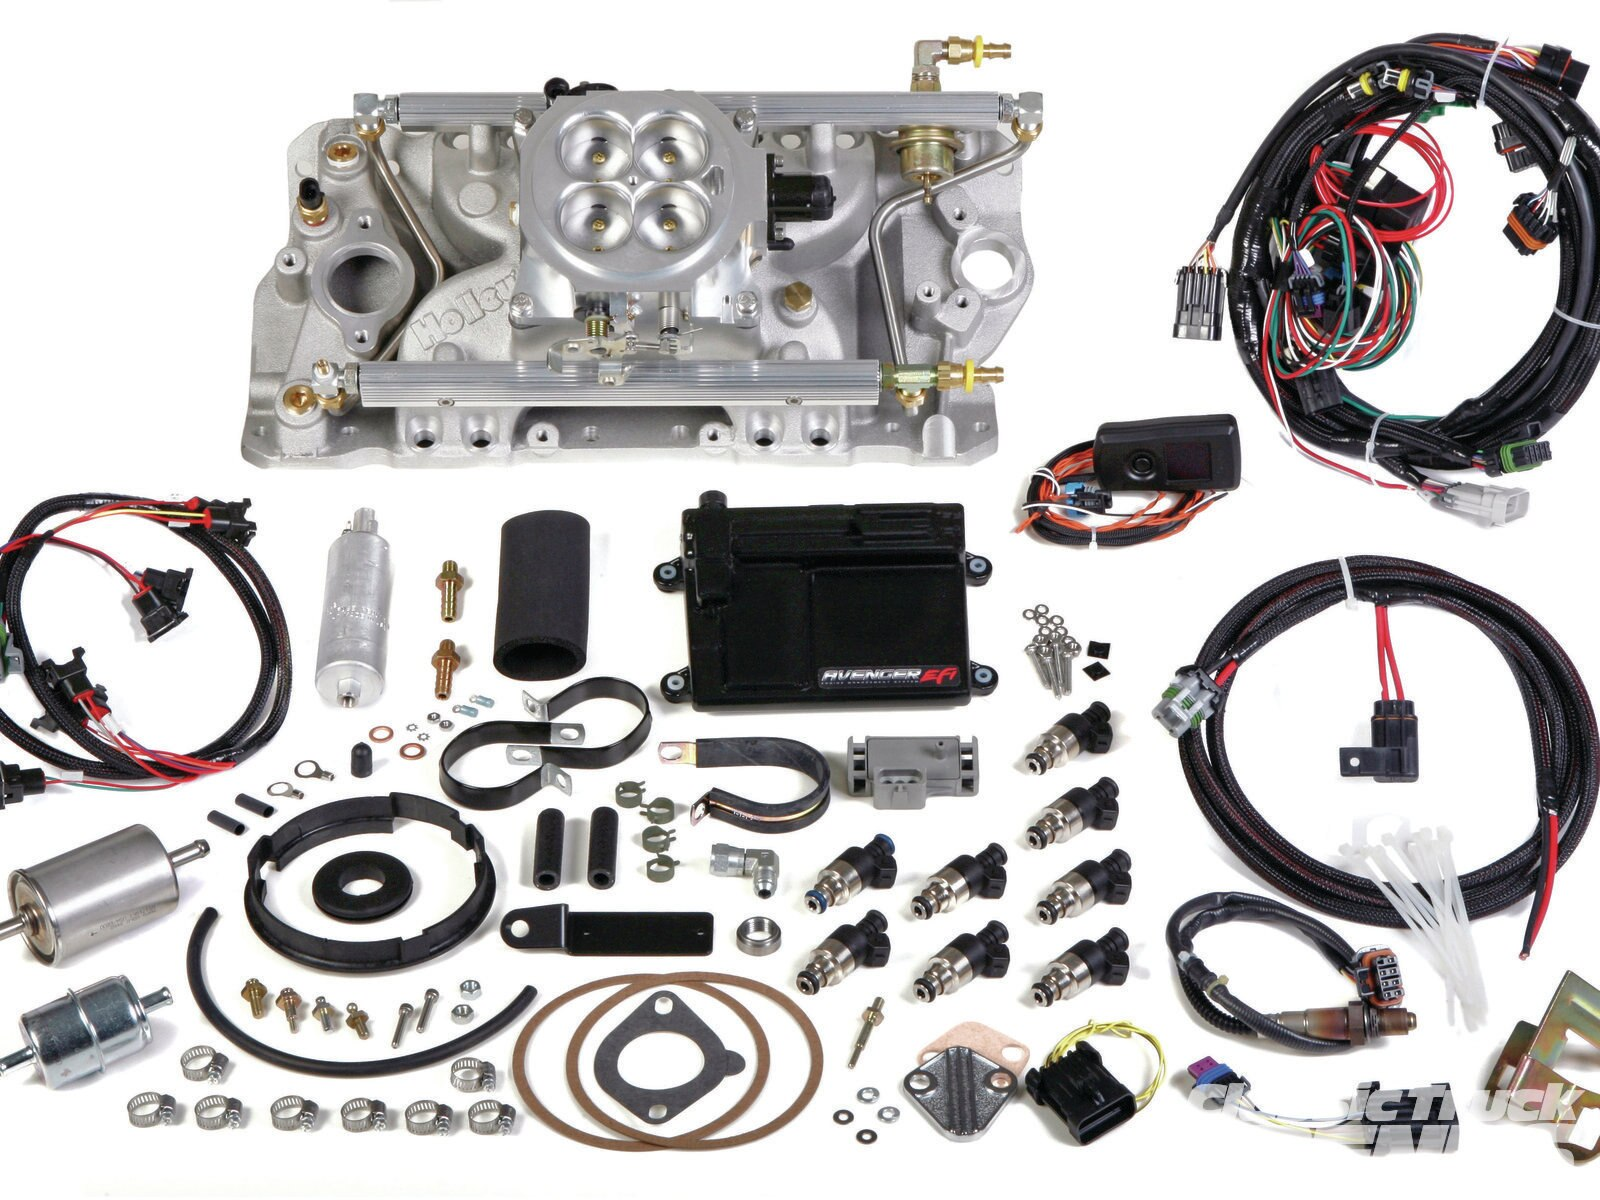 holley avenger multiport efi system1?resize\=665%2C499 kenwood dnx6140 wiring diagram cd player kenwood kdc hd942u kenwood kdc hd942u wiring diagram at reclaimingppi.co